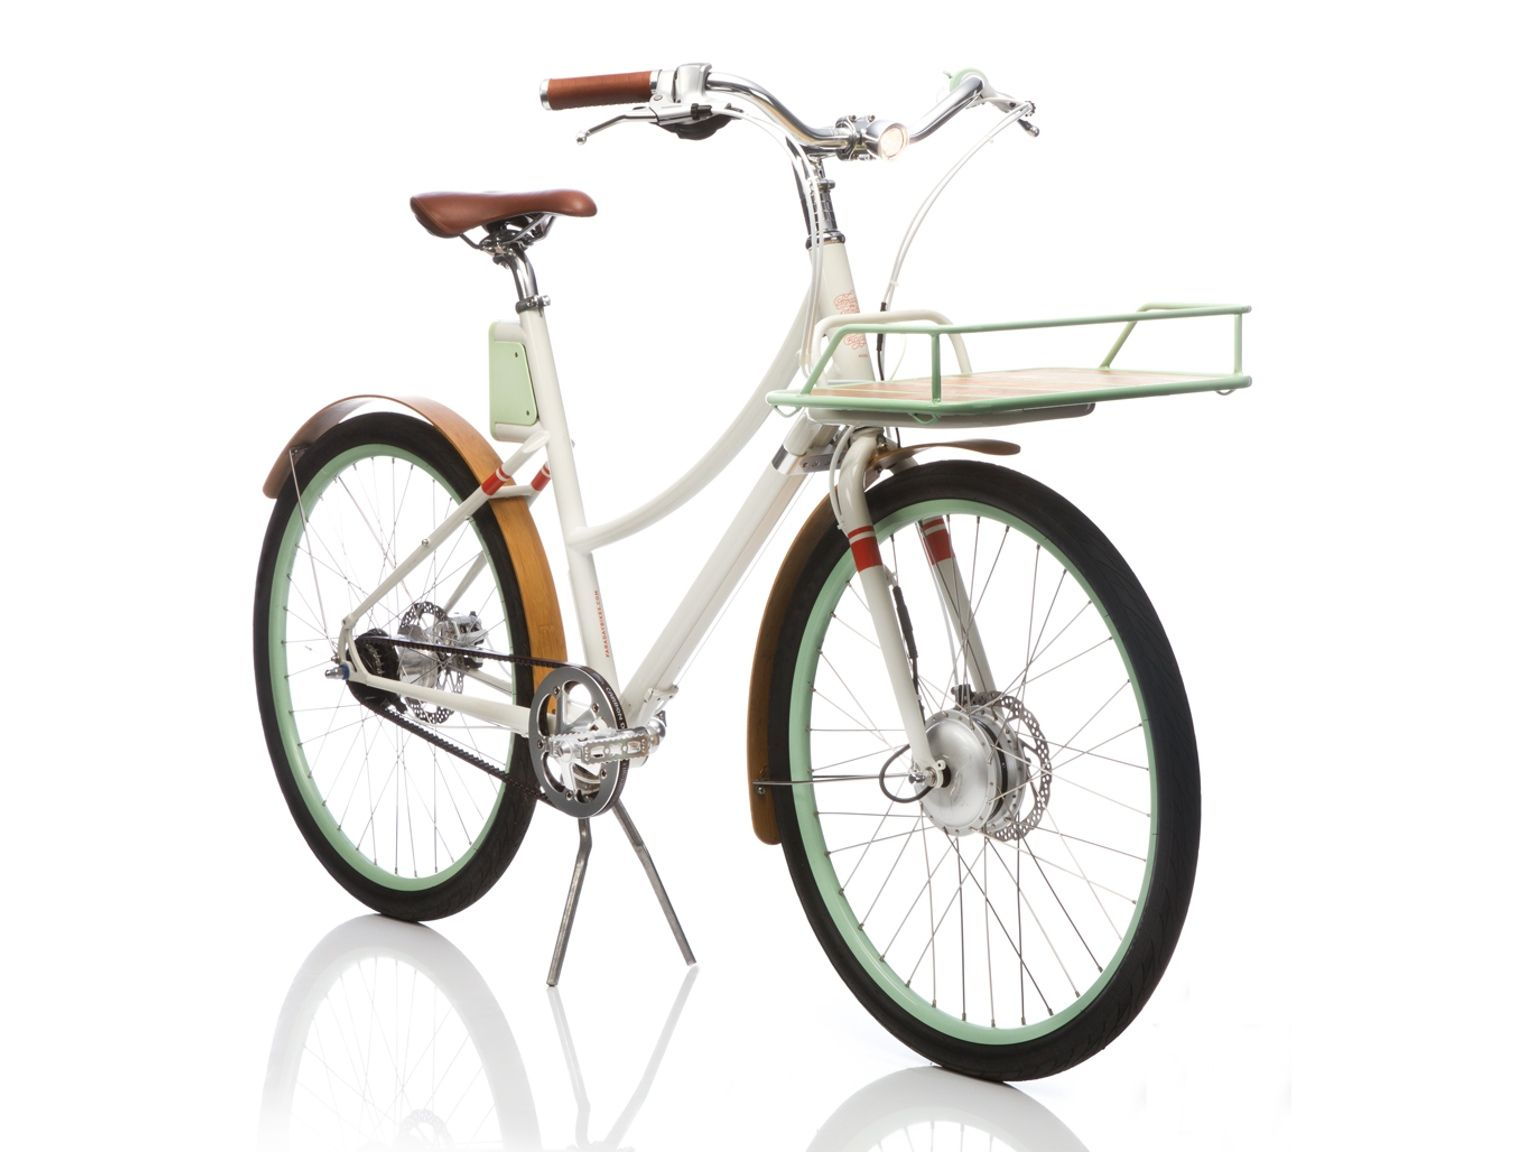 Faraday Courtland Electric Bicycle Be The First To Conquer Hills Tackle Headwinds And Arrive In Style On Th Electric Bicycle Ebike Electric Bicycle Bicycle